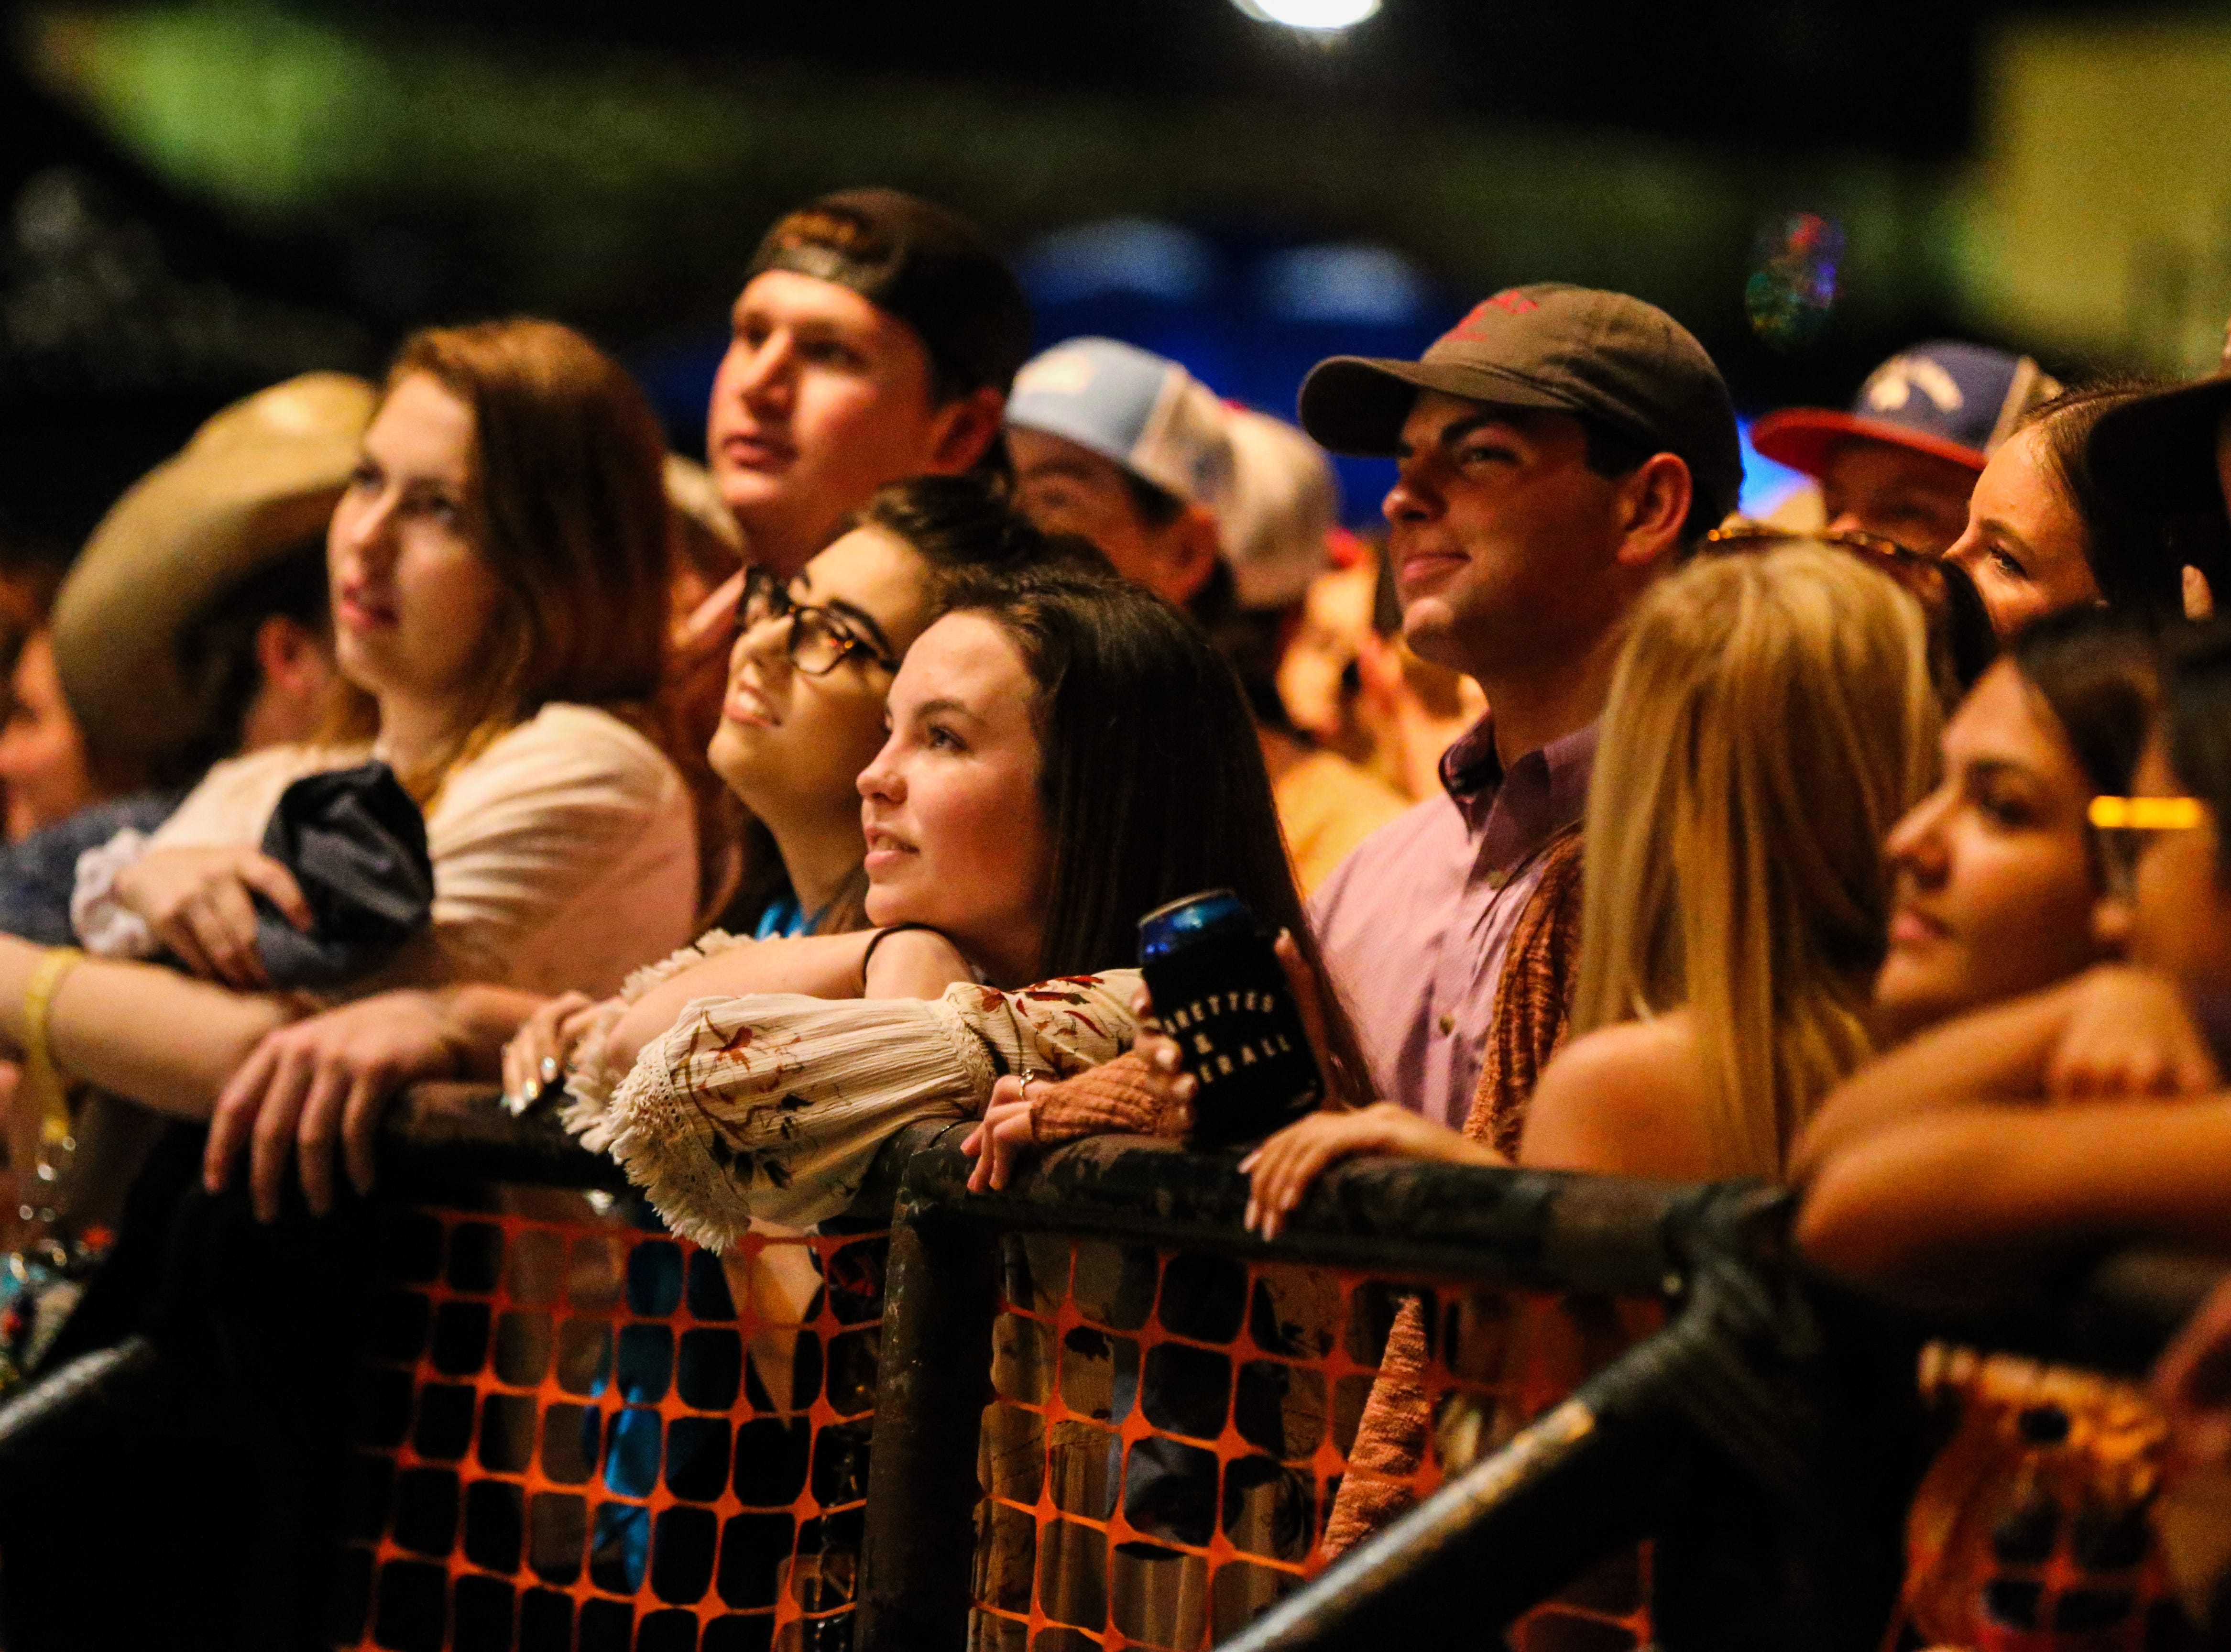 Concert goers wait as Flatland Cavalry gets ready to perform during Wild West Fest Friday, March 1, 2019, at the Bill Aylor Sr. Memorial RiverStage.